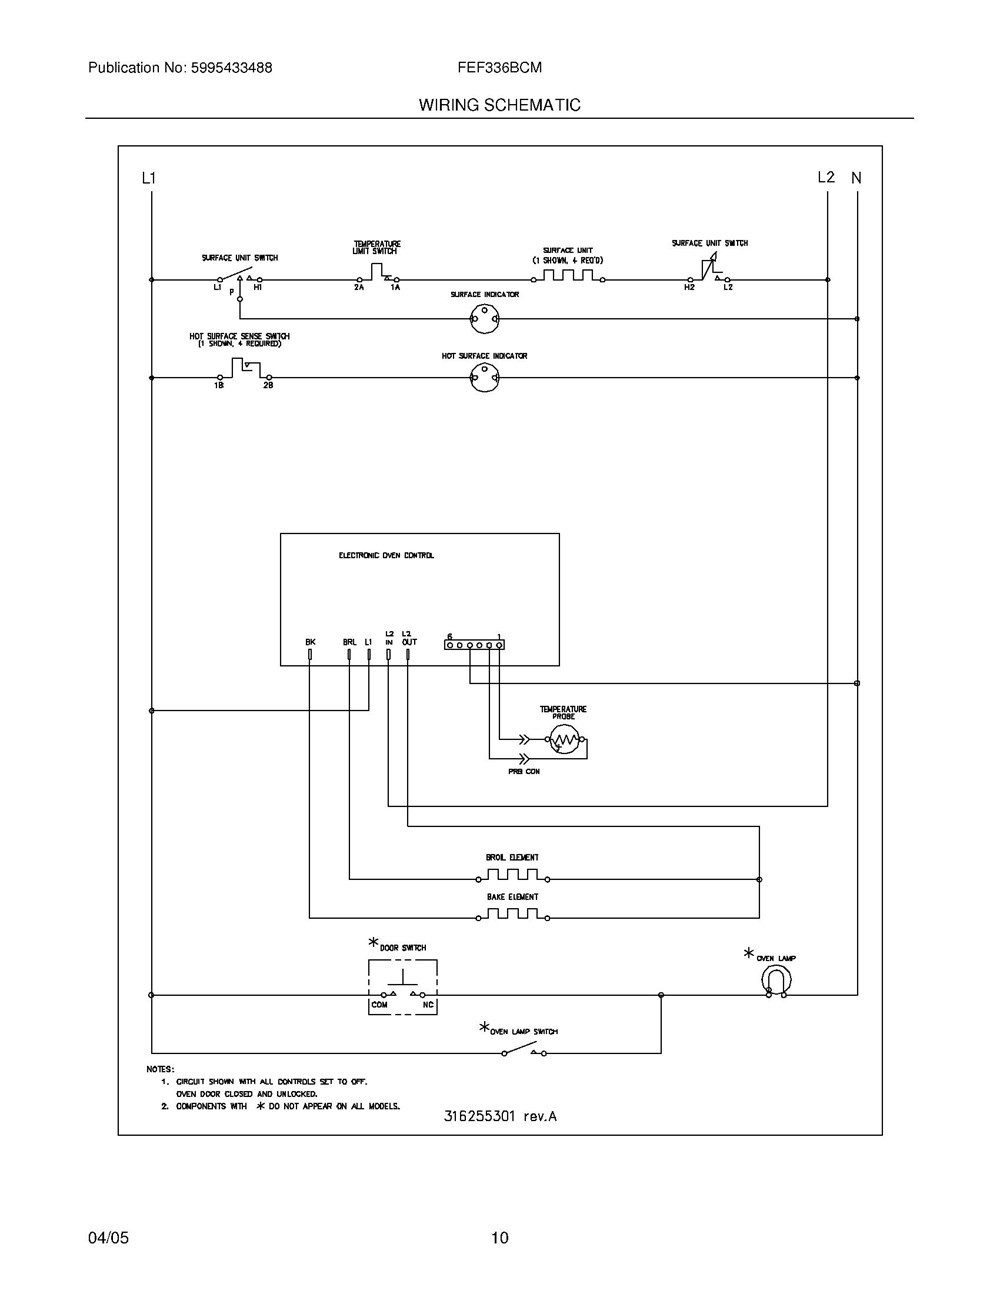 Fef336bcm Frigidaire Company Appliance Parts Backguard 05body 07top Drawer 09door 01cover 10wiring Diagram